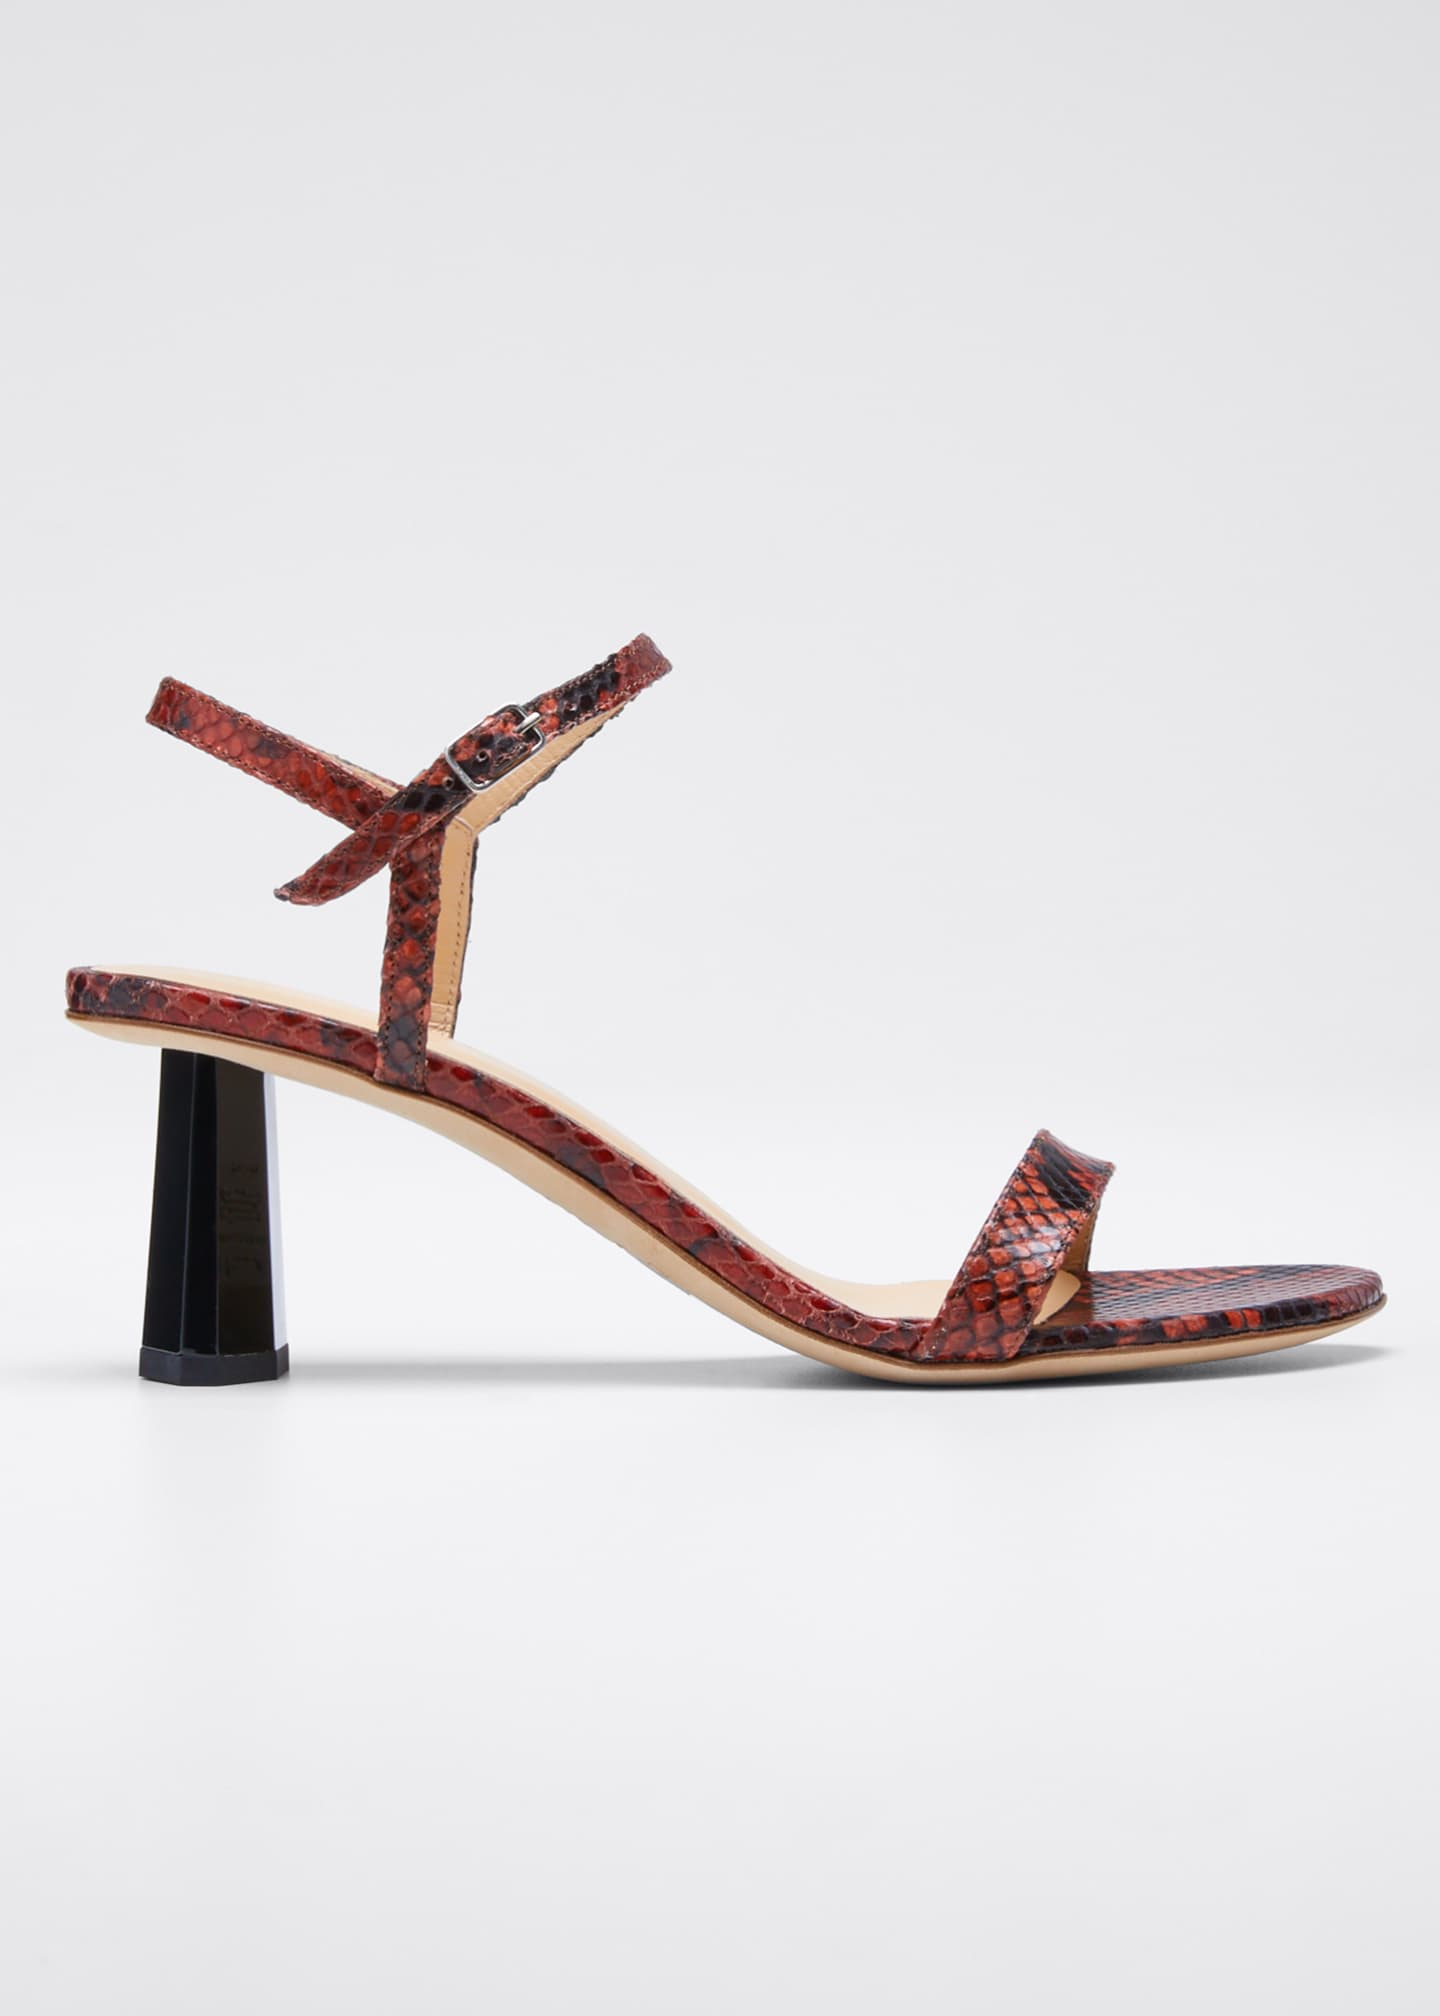 BY FAR Magnolia Snake-Print Sandals